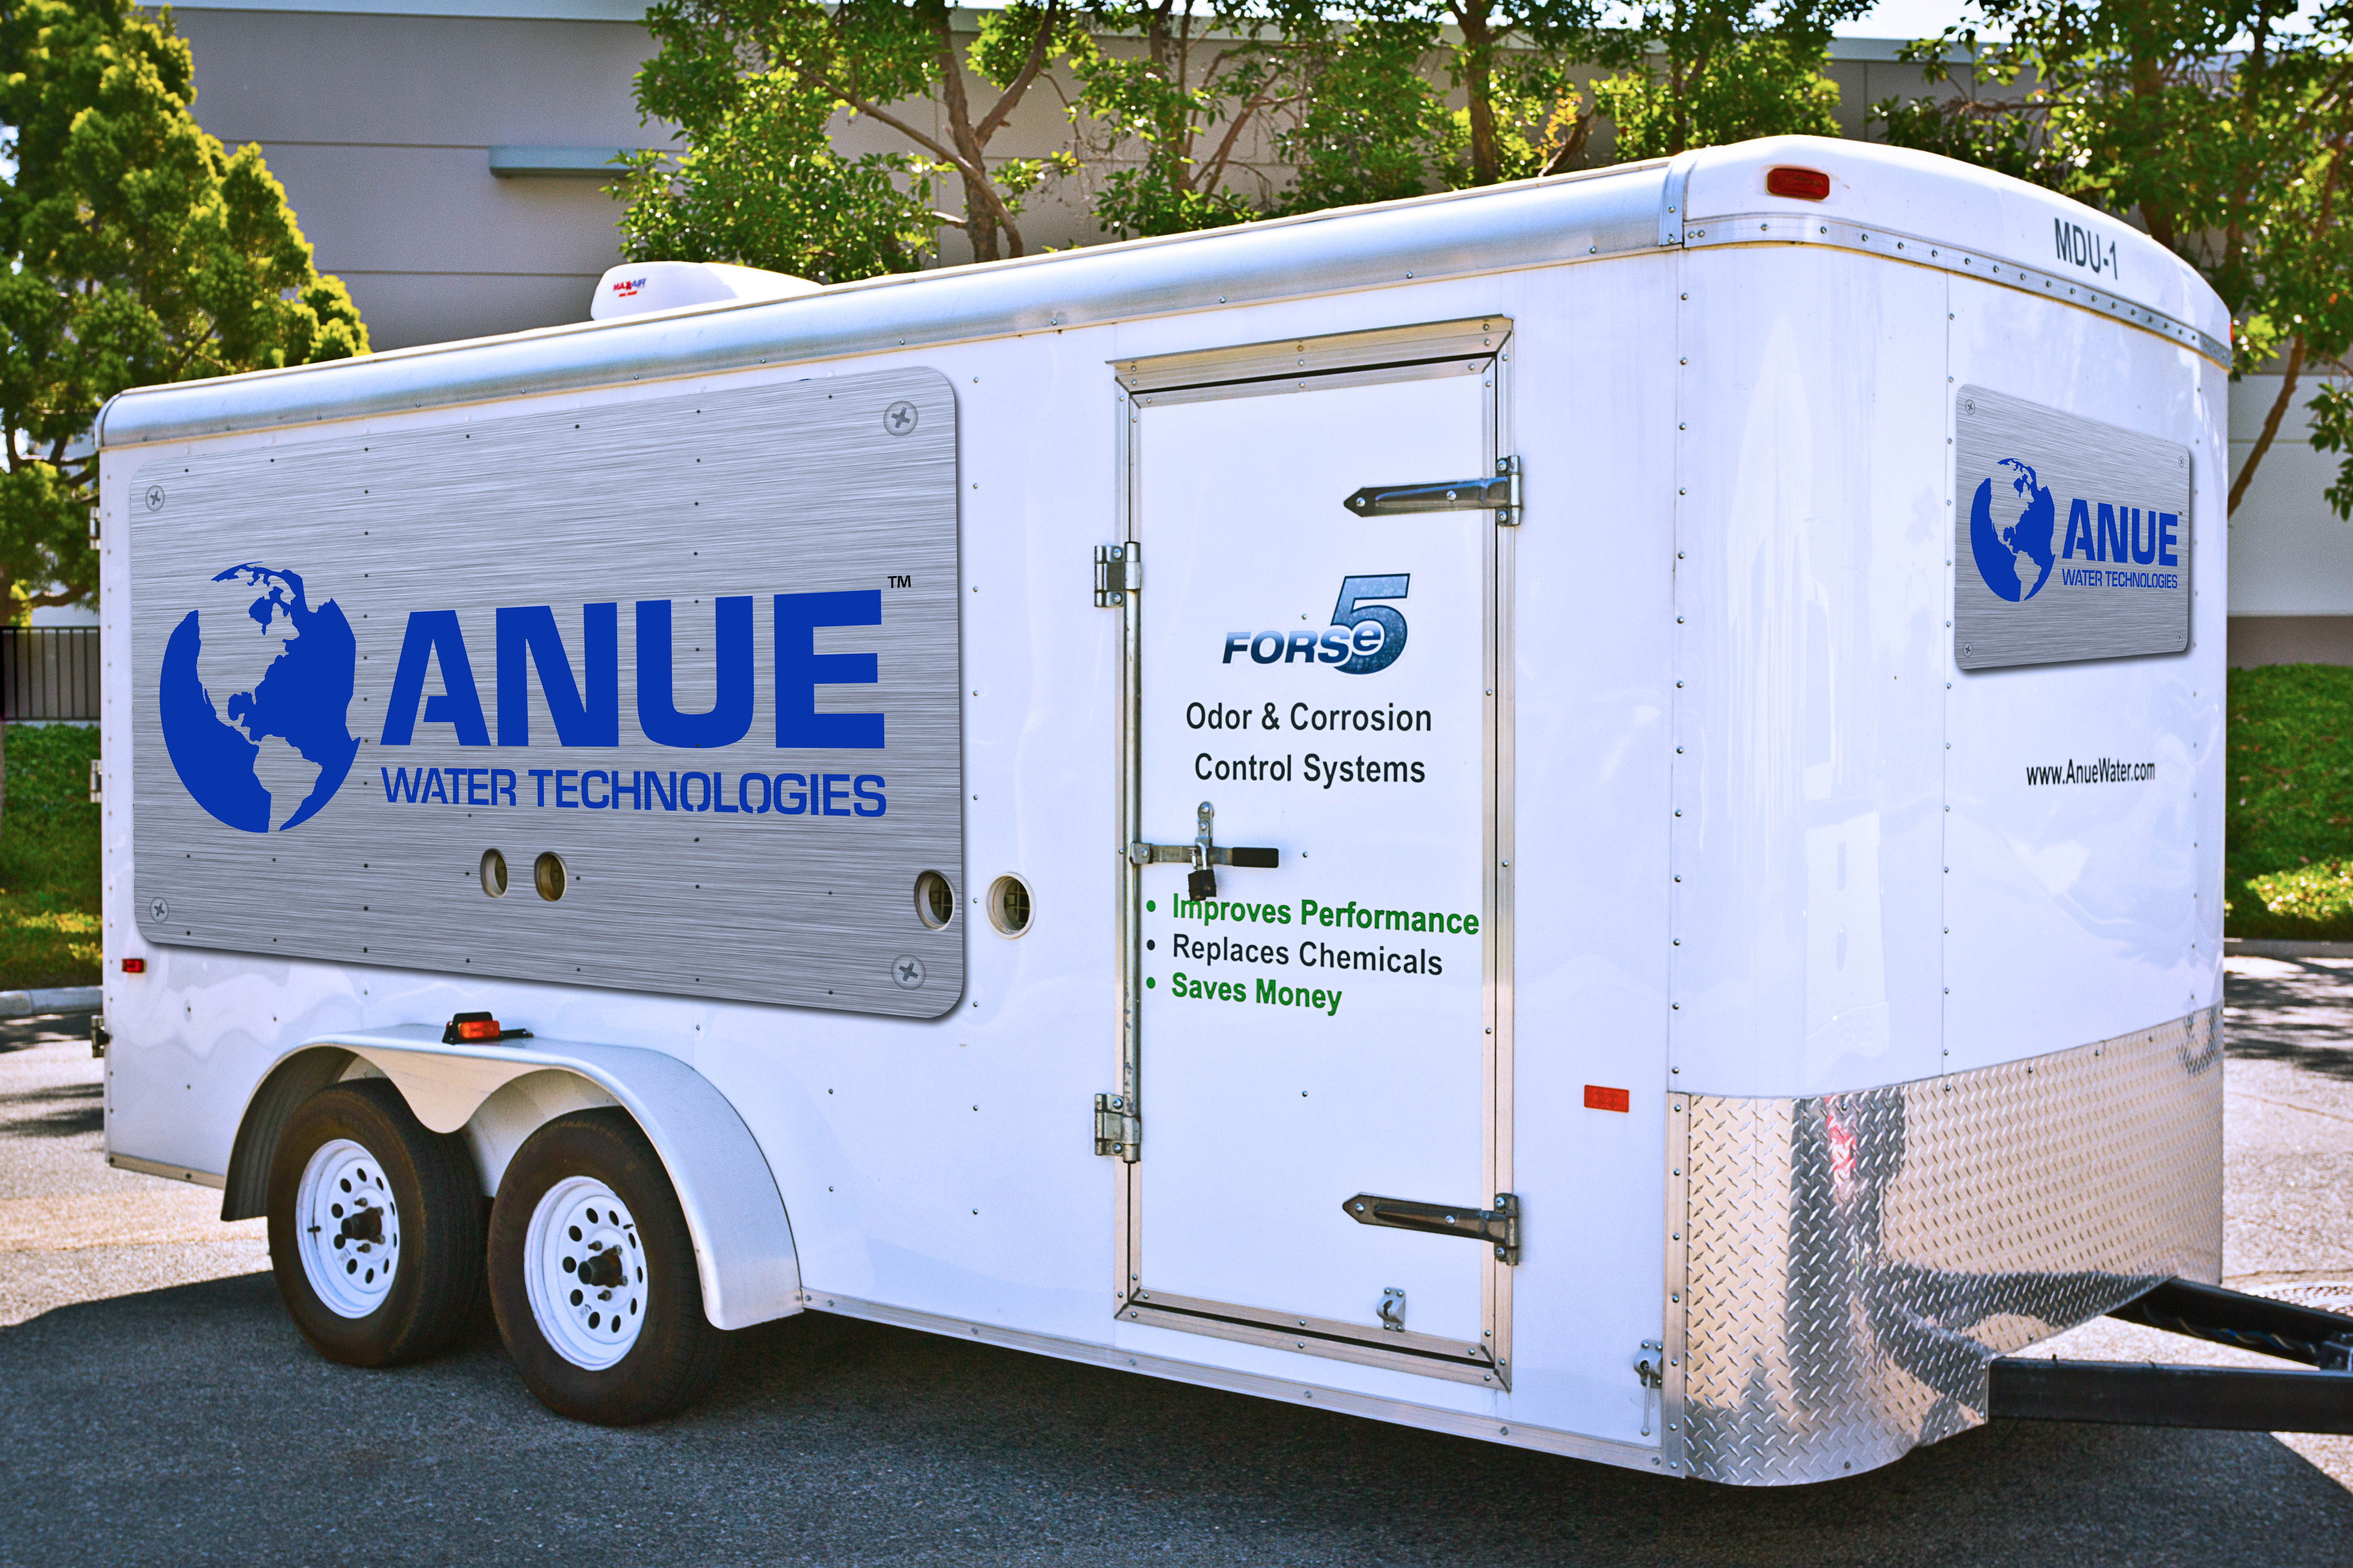 Anue trucks, vans and technical experts travel to municipalities all over the USA, eliminating FOG, odor, corrosions and other problems with the equipment and service they bring to the site.